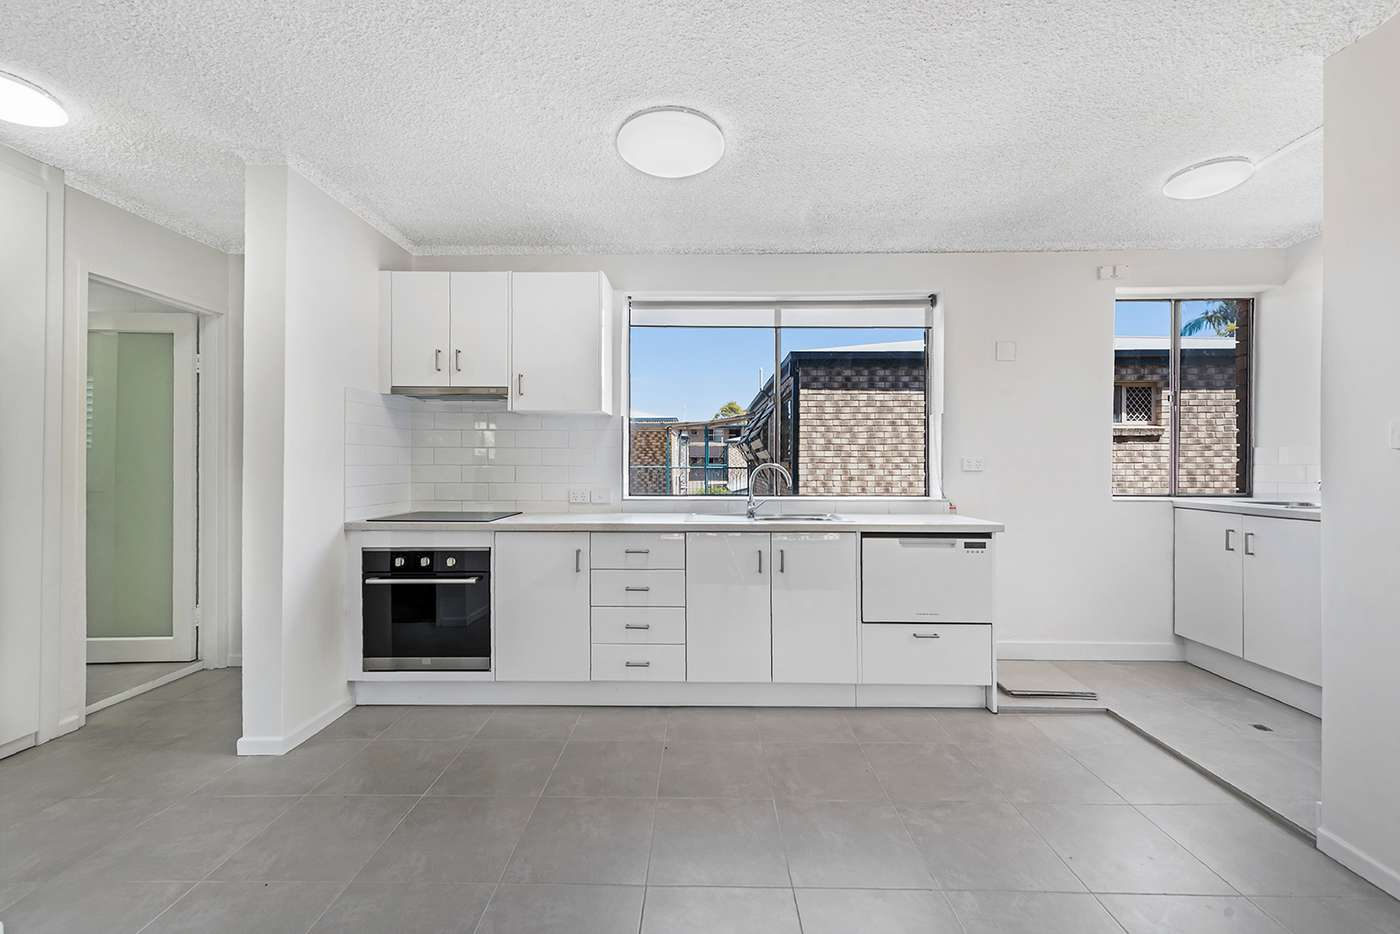 Main view of Homely house listing, 2/65 Jellicoe Street, Coorparoo QLD 4151